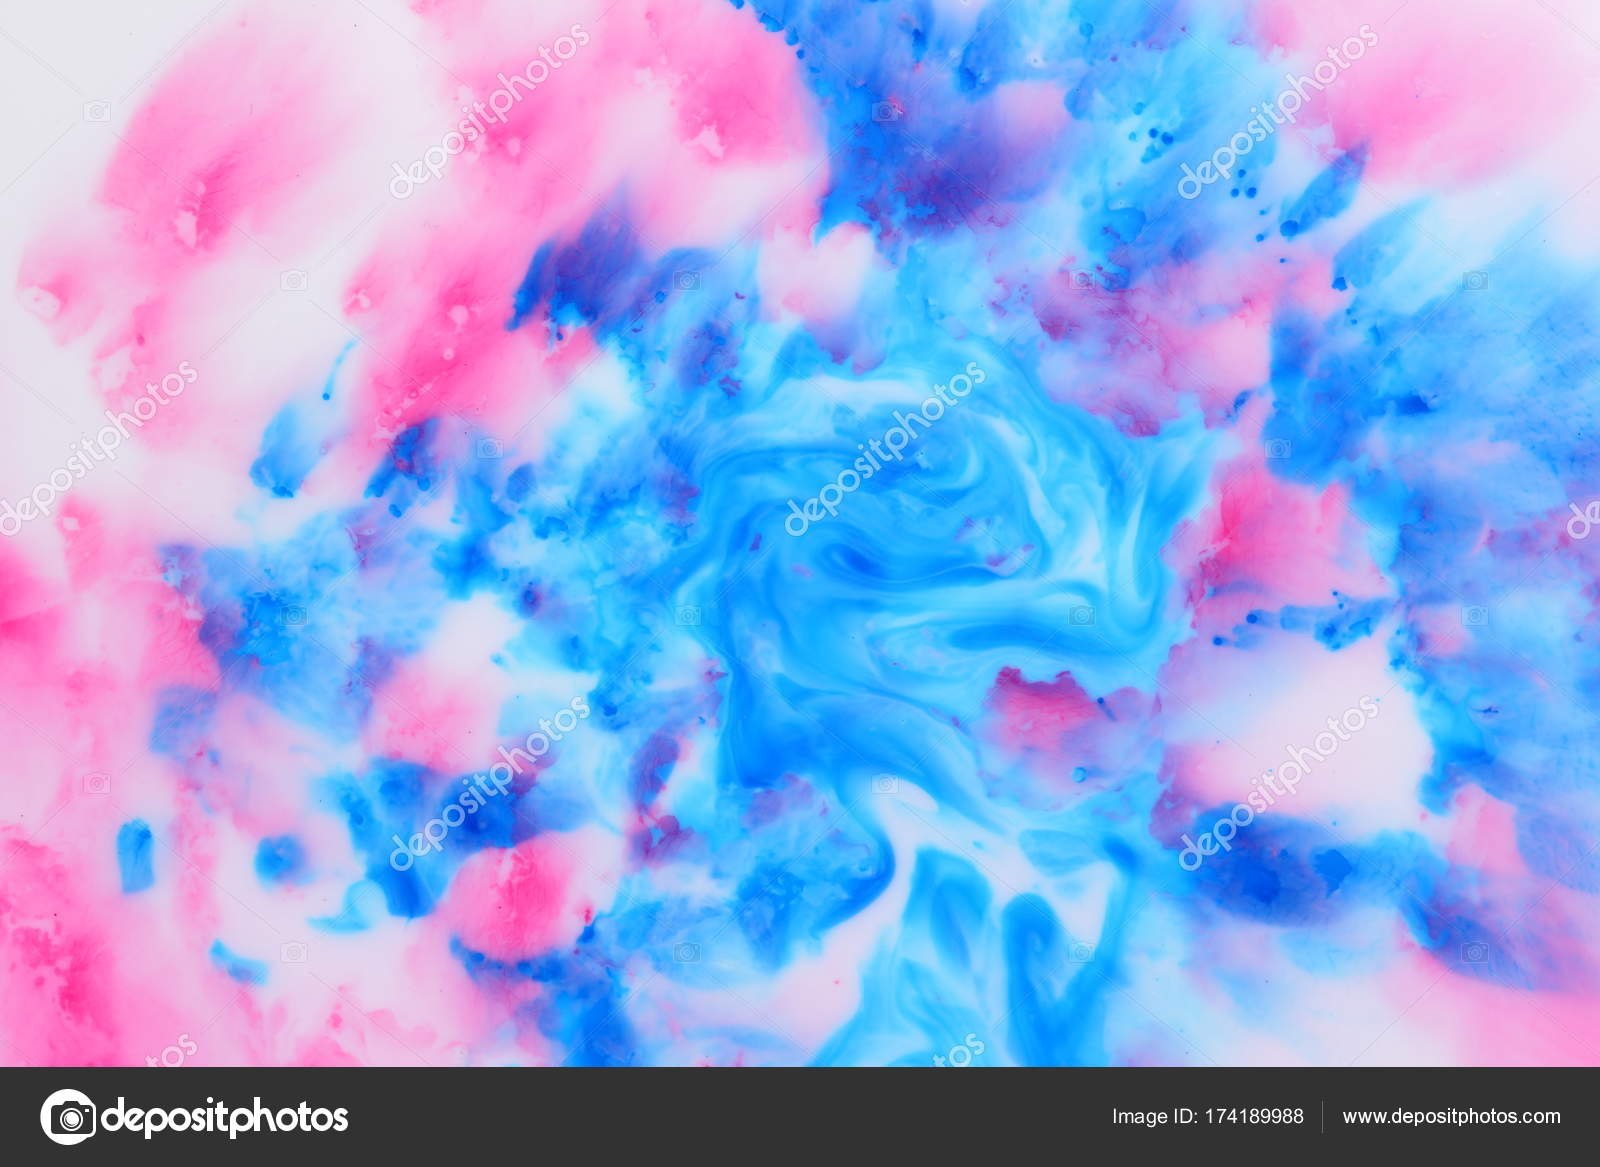 blue pink abstract spots on white liquid pink blue space background pop art texture minimalist background for designer multicolored pattern photo by